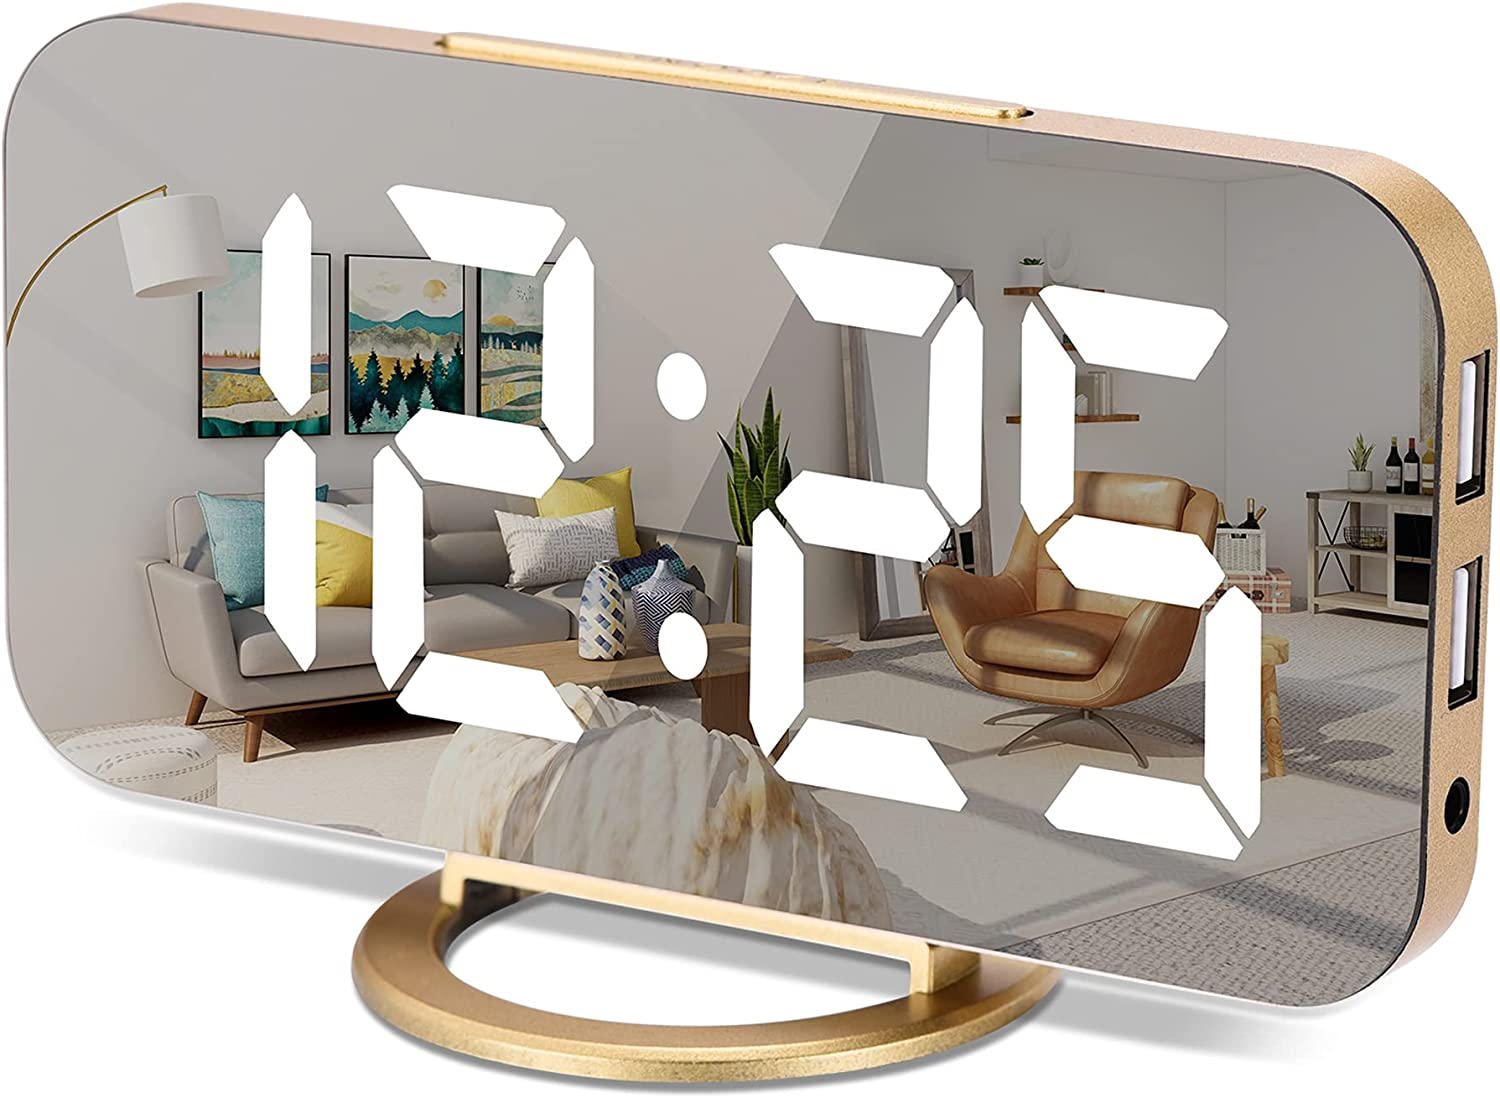 Digital Alarm Clock,7 in LED Mirrored Clocks Large Display,with 2 USB Charger Ports,Auto Dim,Night Mode,Modern Desktop Electronic Clocks for Bedroom Home Office Decor - Gold